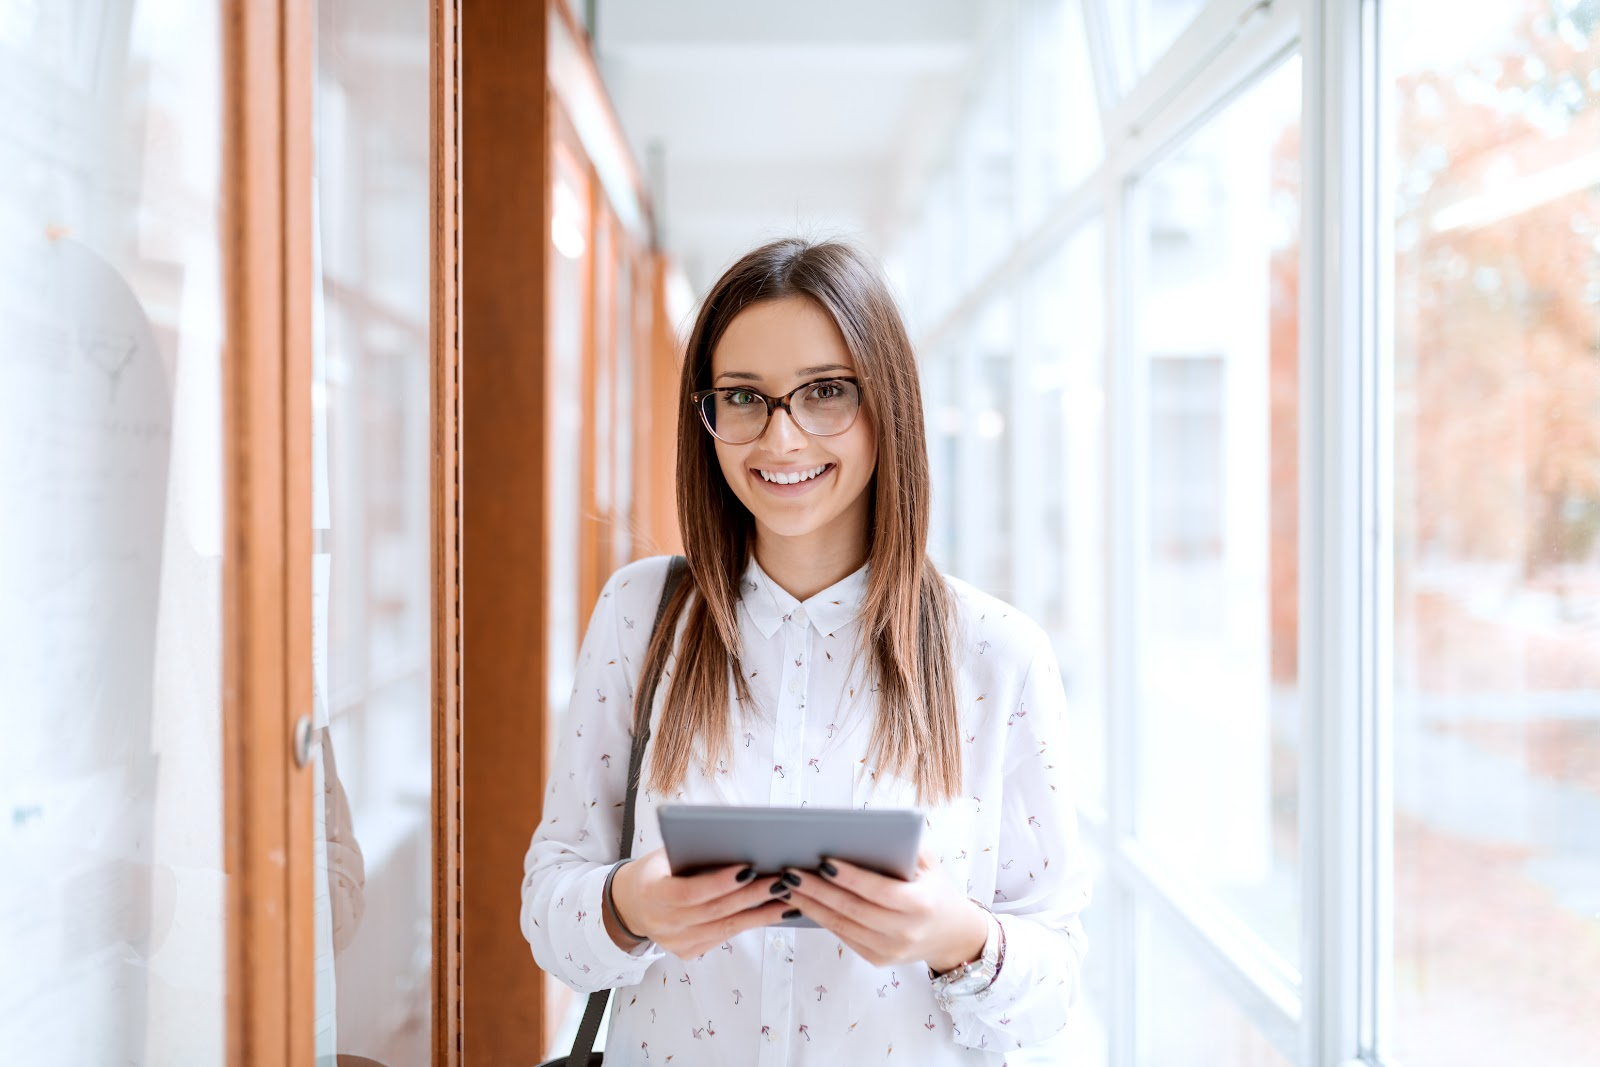 spring internships: College girl holding tablet while standing in hallway and looking at camera.